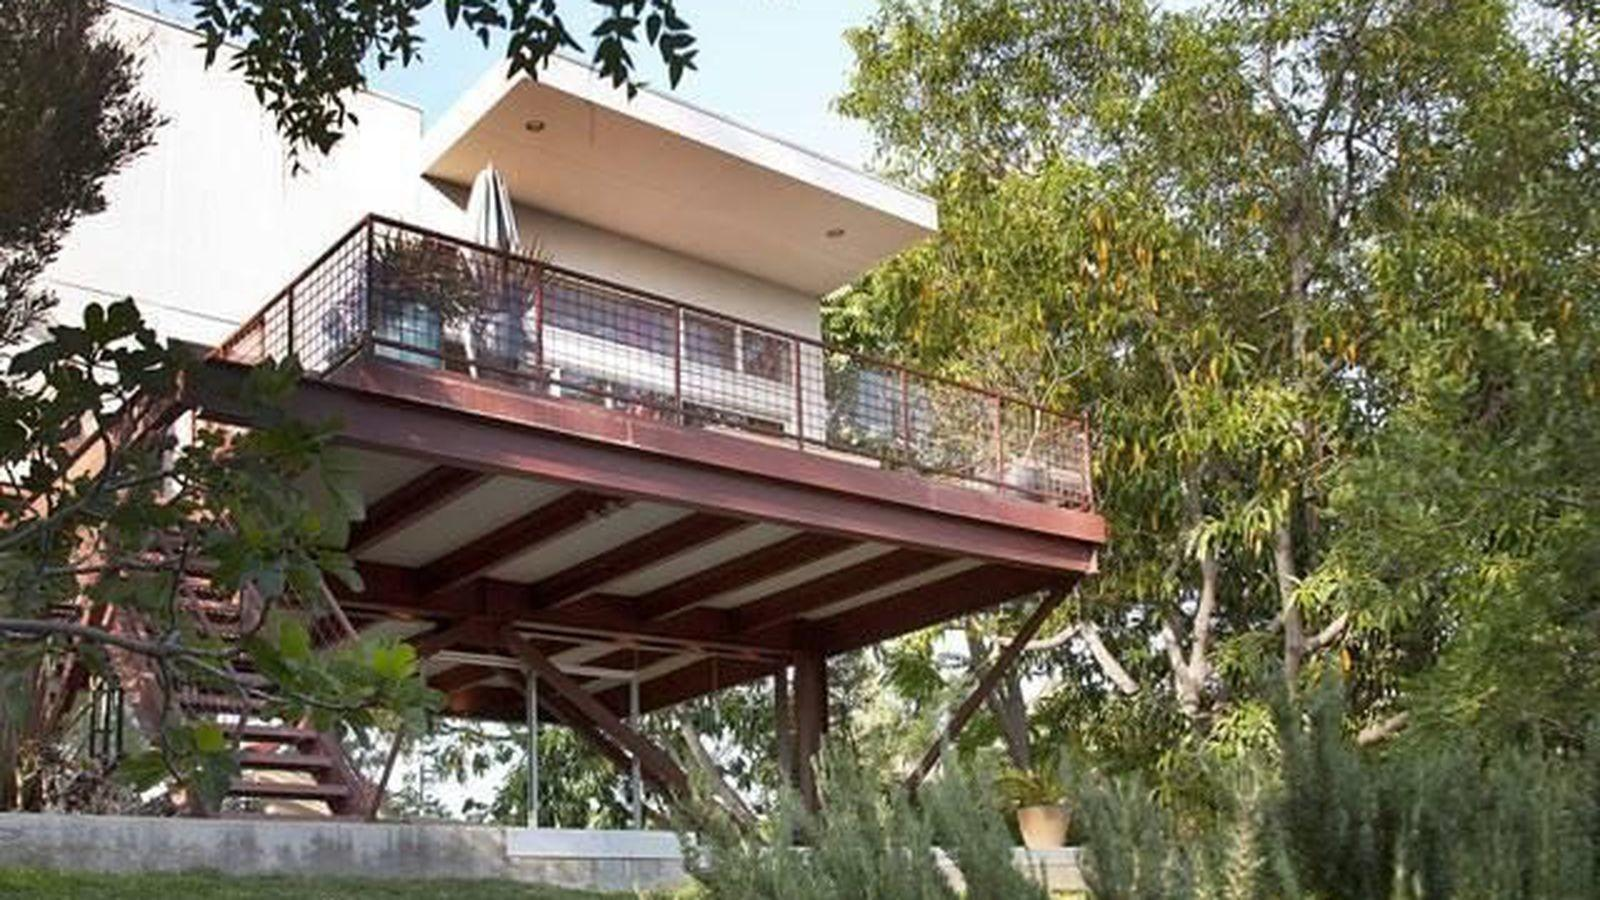 Barbara Bestor Cantilevered First House